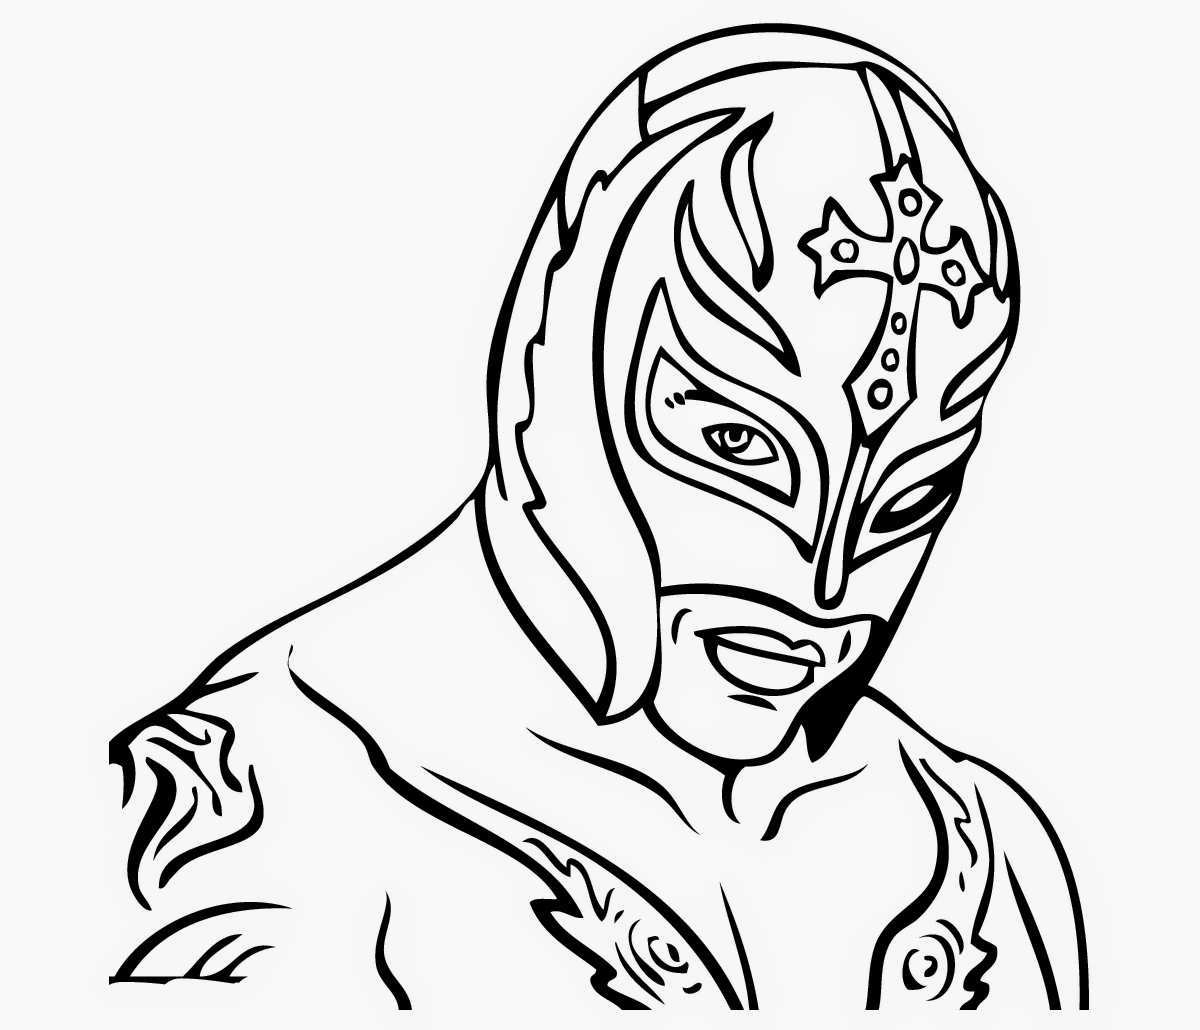 coloring pages wwe free printable world wrestling entertainment or wwe pages coloring wwe